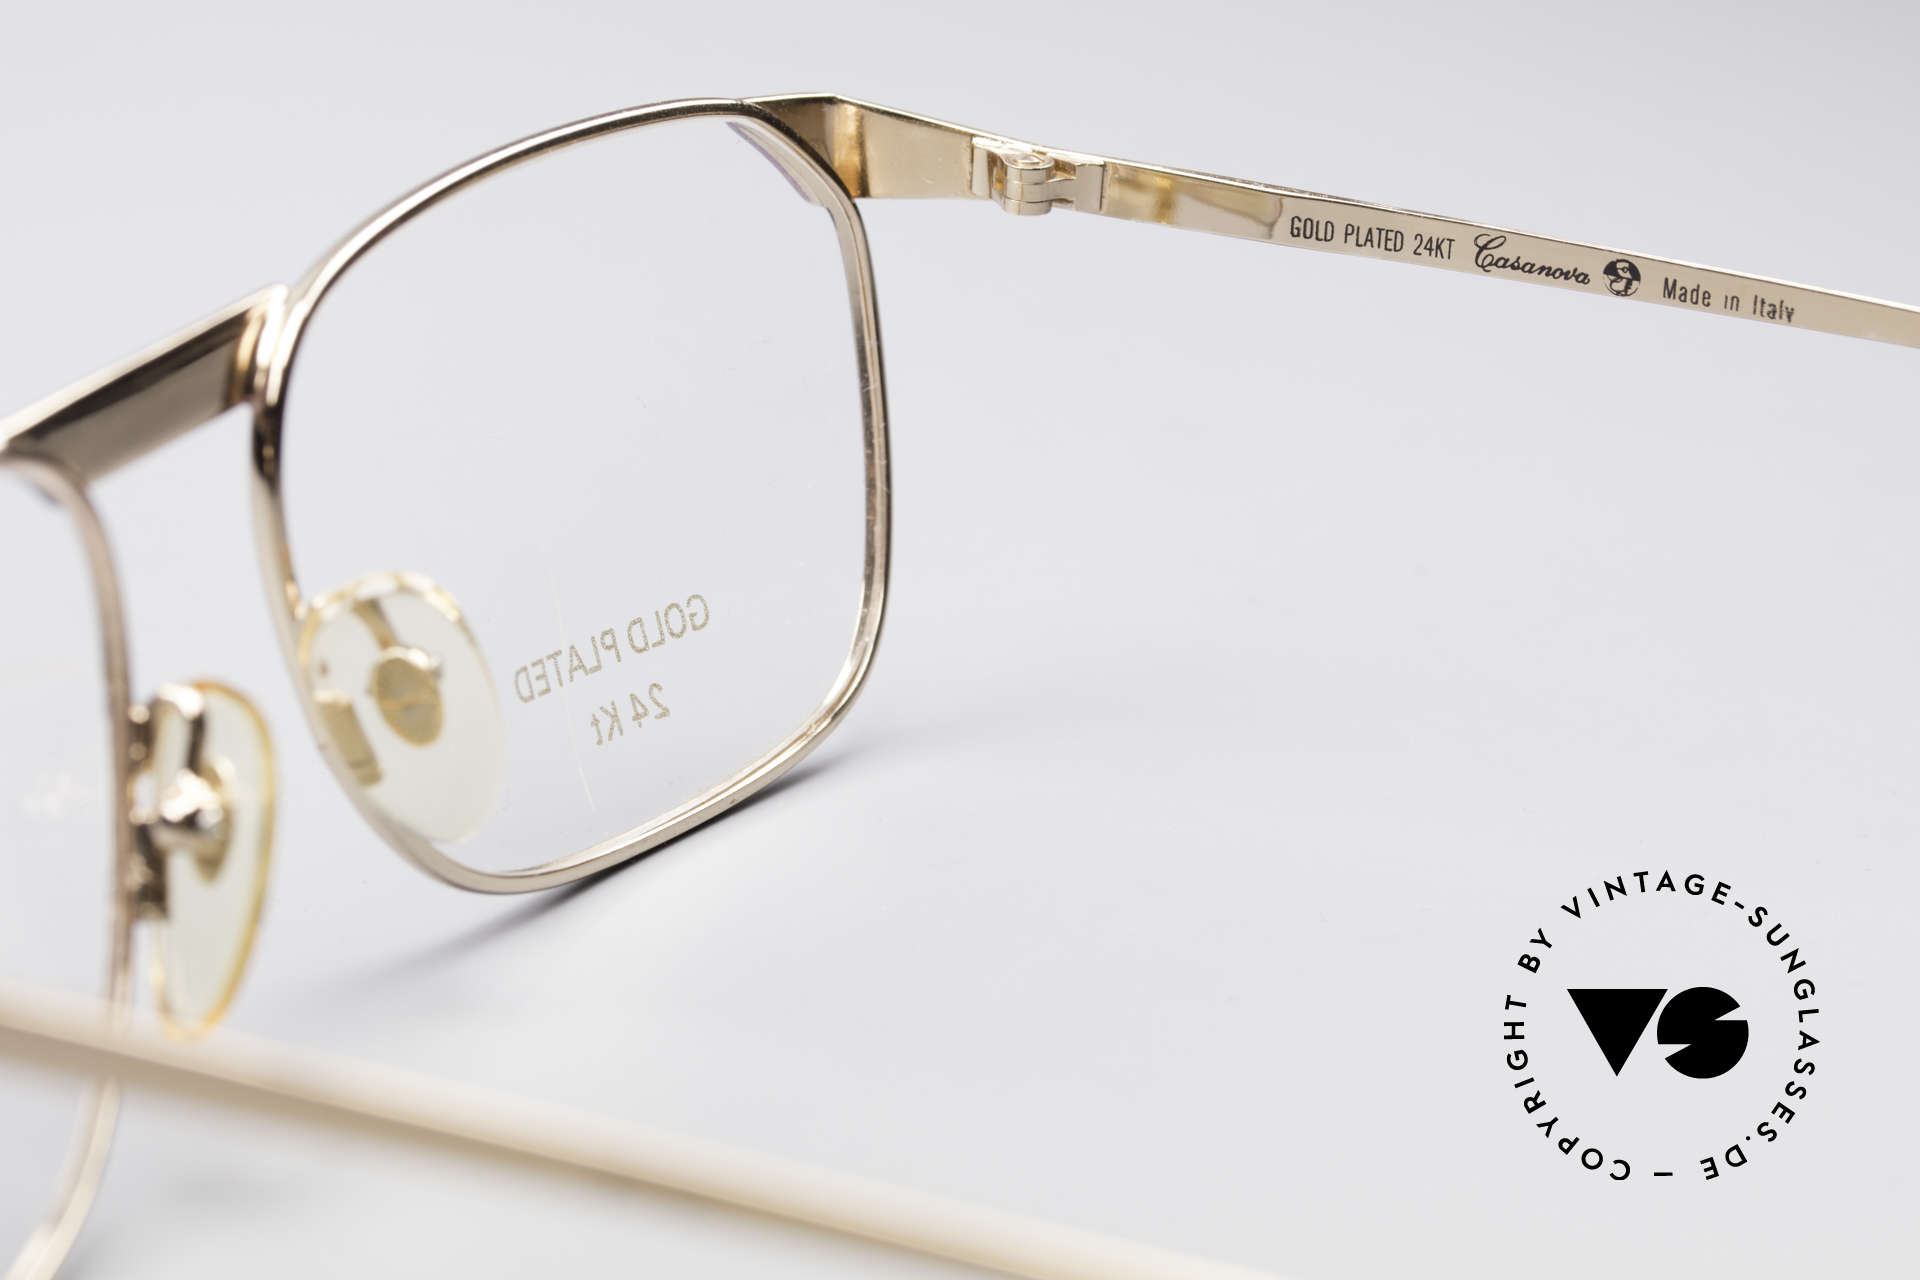 Casanova MC3 24KT Gold Plated Glasses, frame can be glazed with optical lenses of any kind, Made for Men and Women